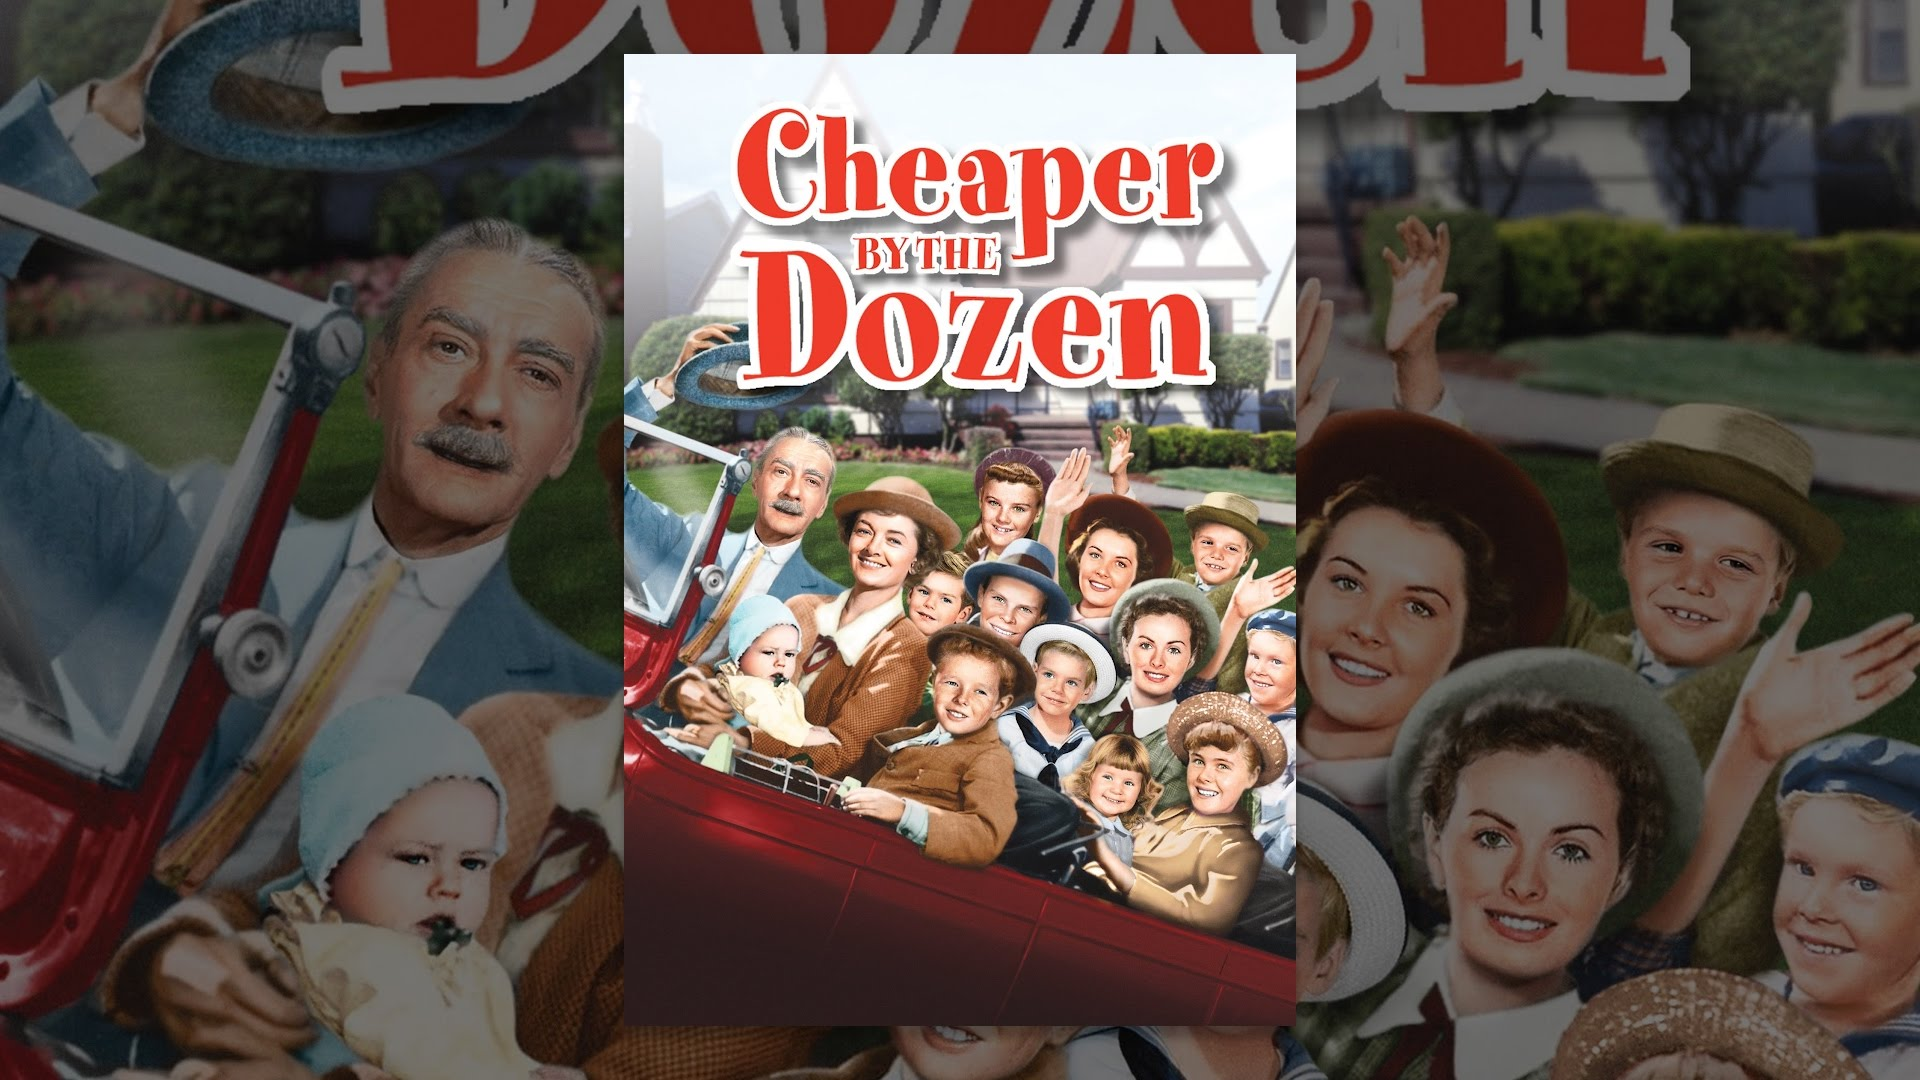 movie analysis cheaper by the dozen Watch comedy movie cheaper by the dozen on movietube cheaper by the dozen, based on the real-life story of the gilbreth family, follows them from providen.